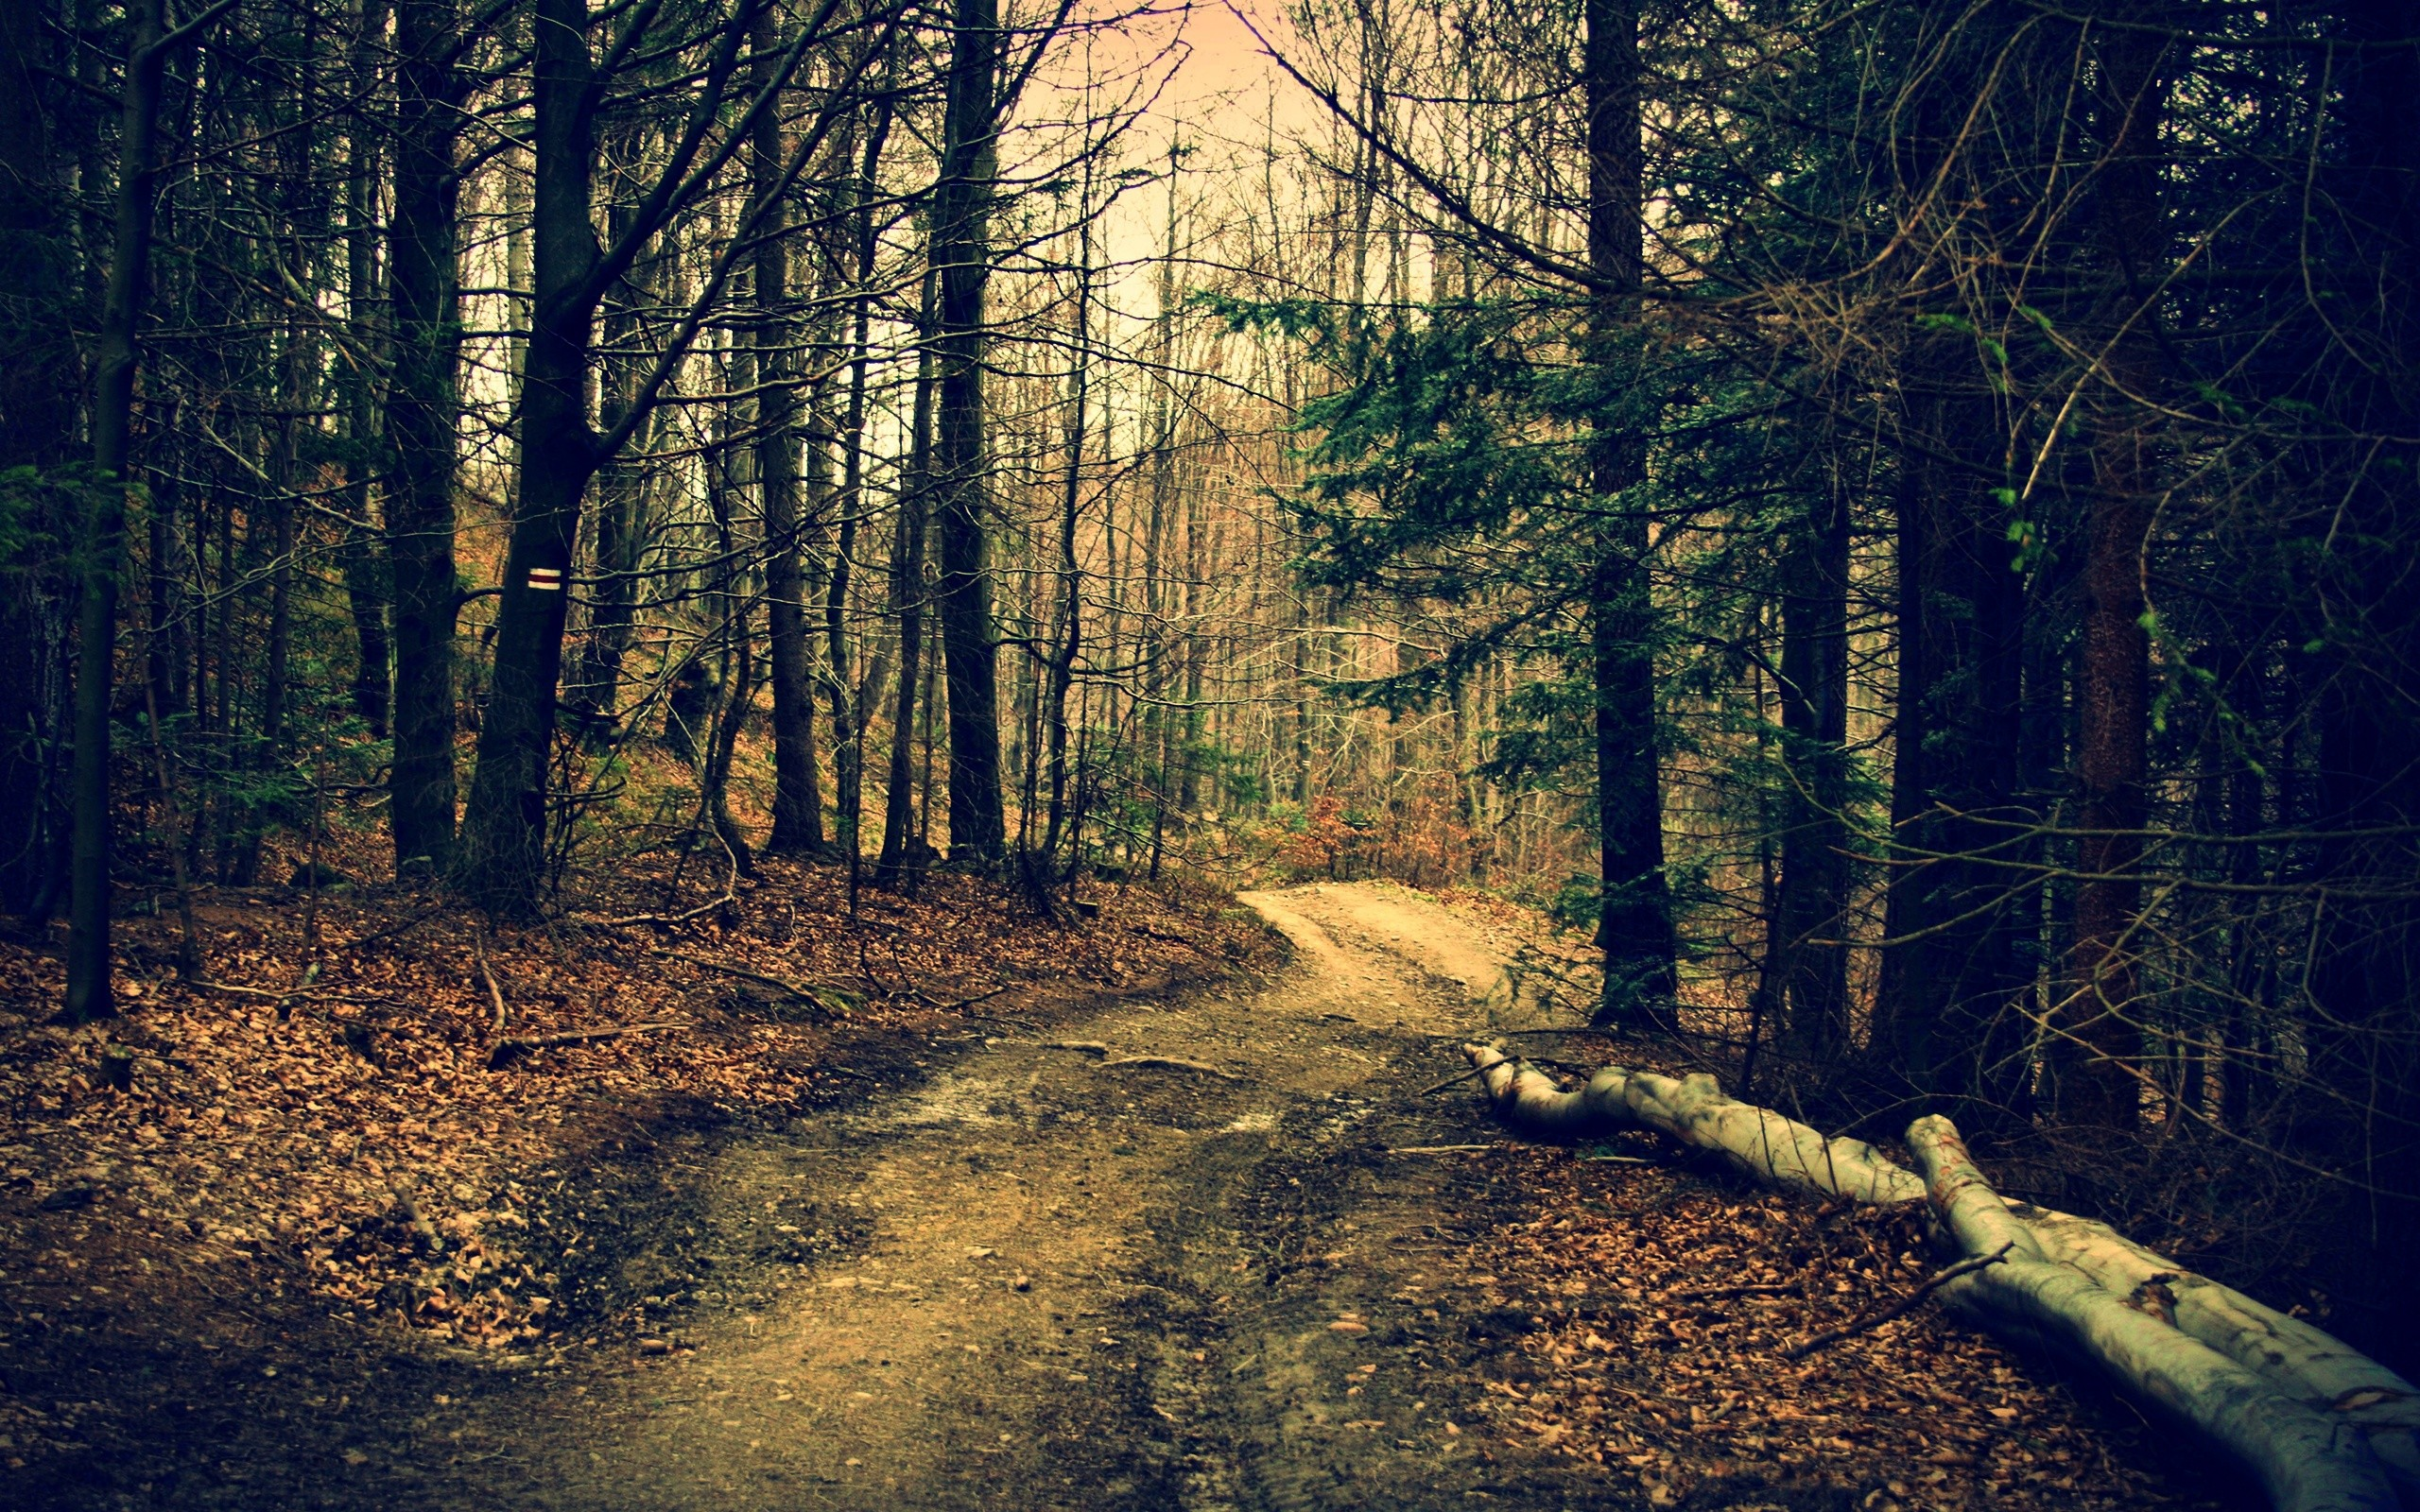 The road in the woods in autumn wallpapers and images   wallpapers 2560x1600